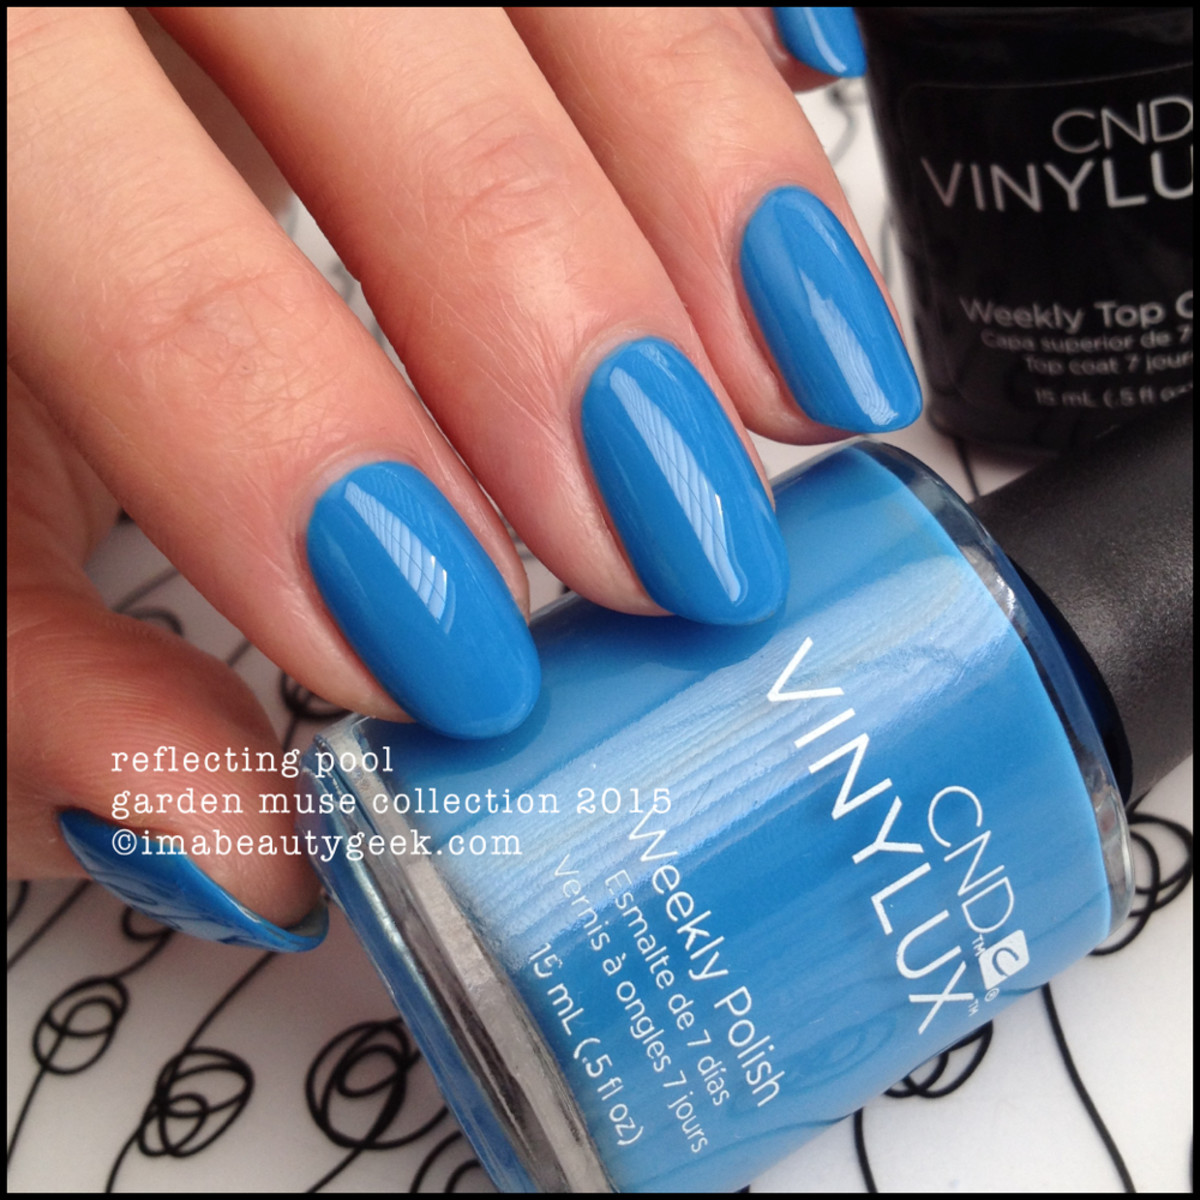 CND Vinylux Garden Muse 2015_CND Vinylux Reflecting Pool